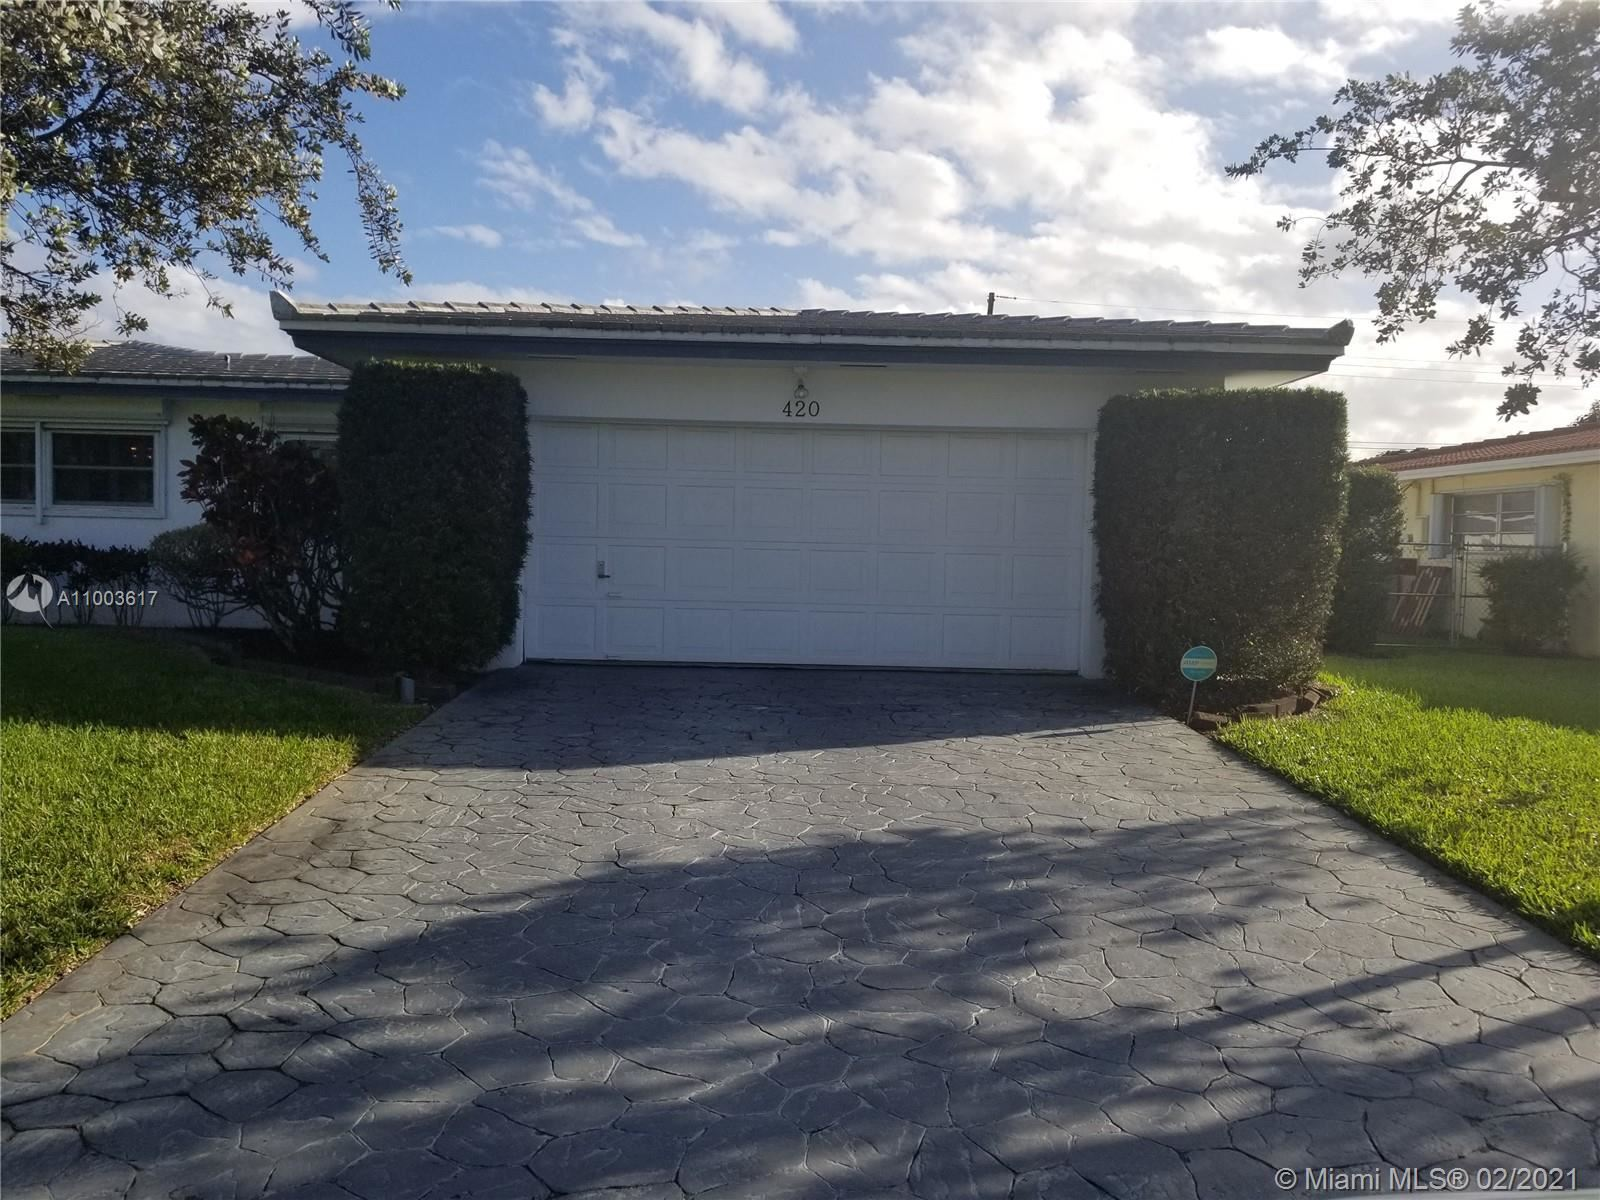 Photo of 420 N Highland Dr, Hollywood, FL 33021 (MLS # A11003617)